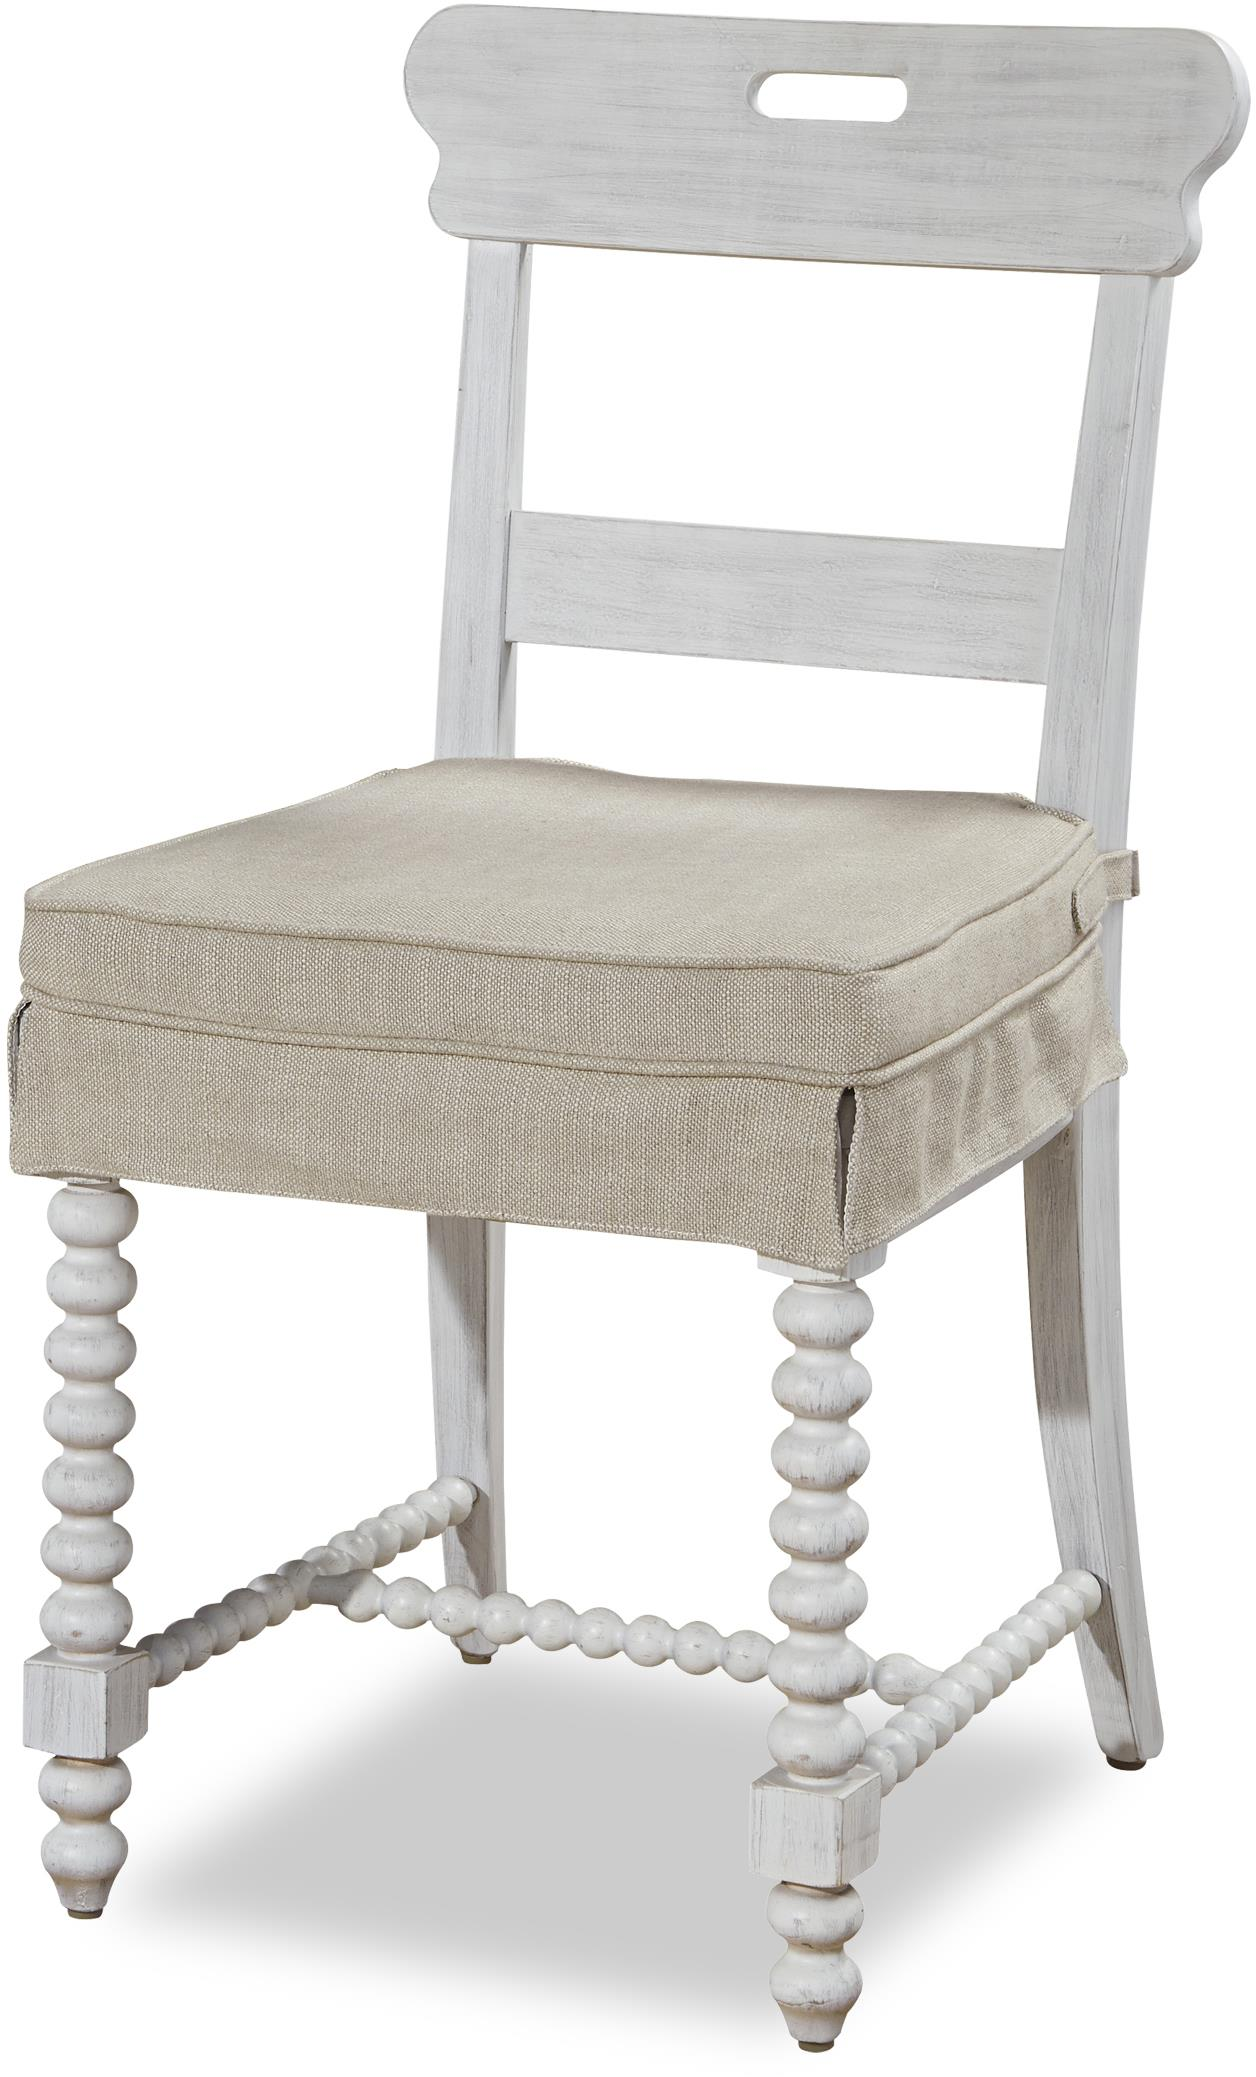 Paula Deen by Universal Dogwood Kitchen Chair - Item Number: 597636-RTA